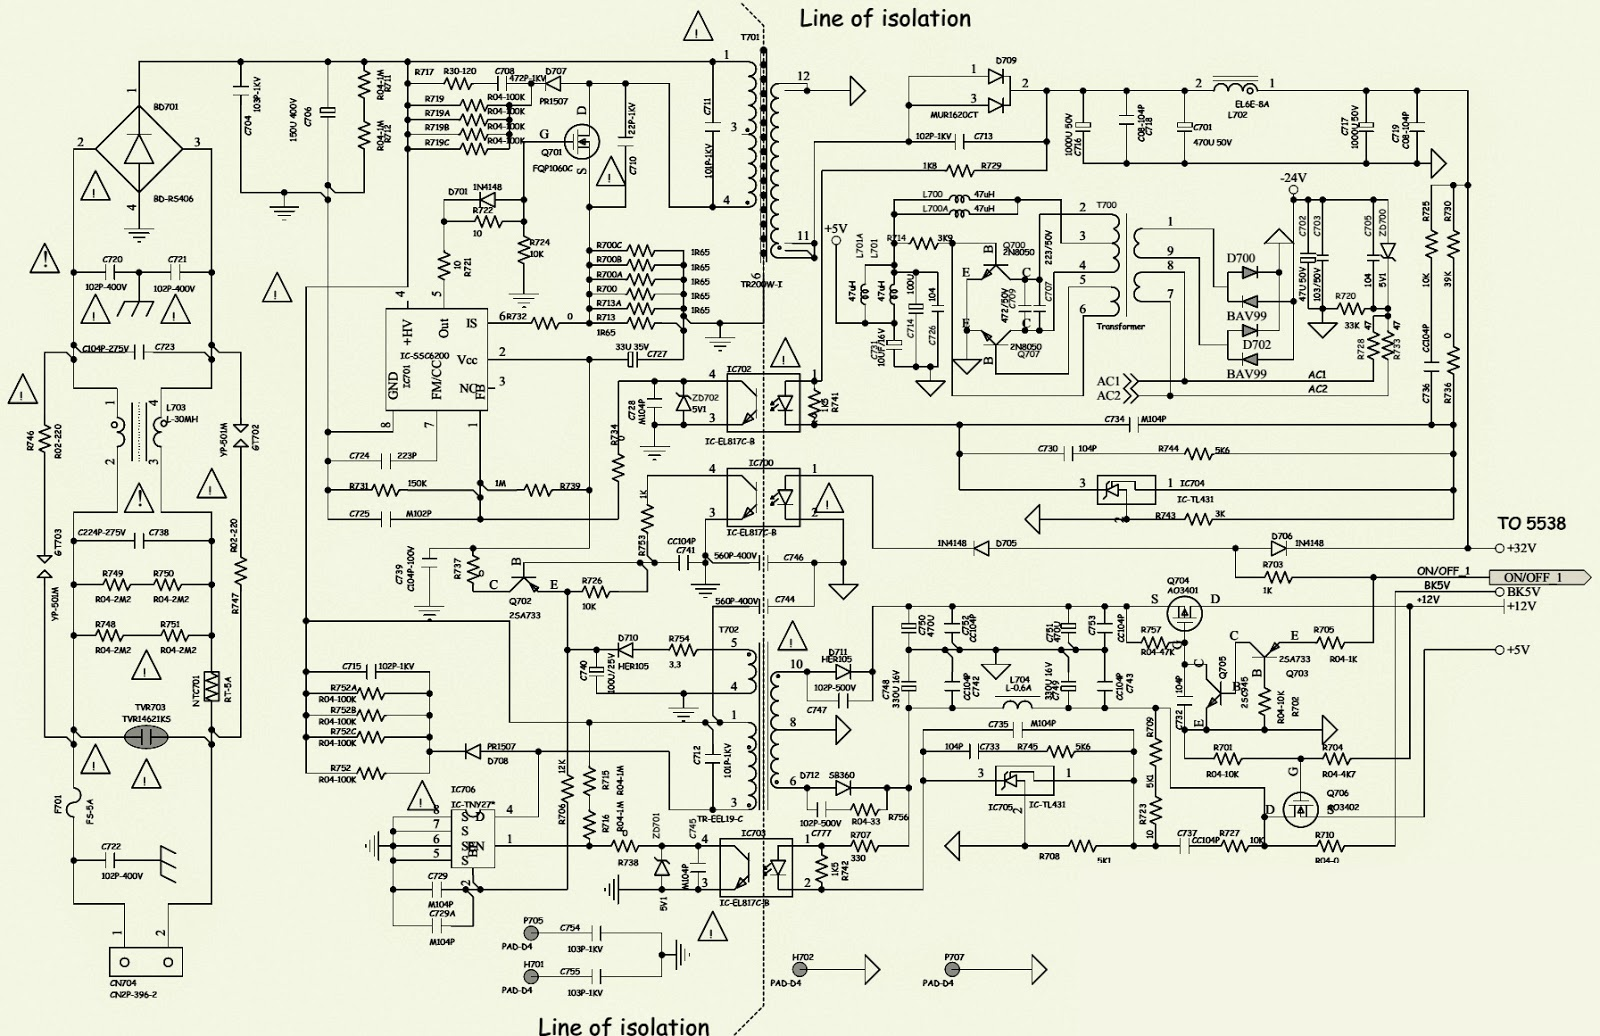 philips fwp2000 network music player smps[power supply) \u0026 powerphilips fwp2000 network music player smps[power supply) \u0026 power amplifier schematic